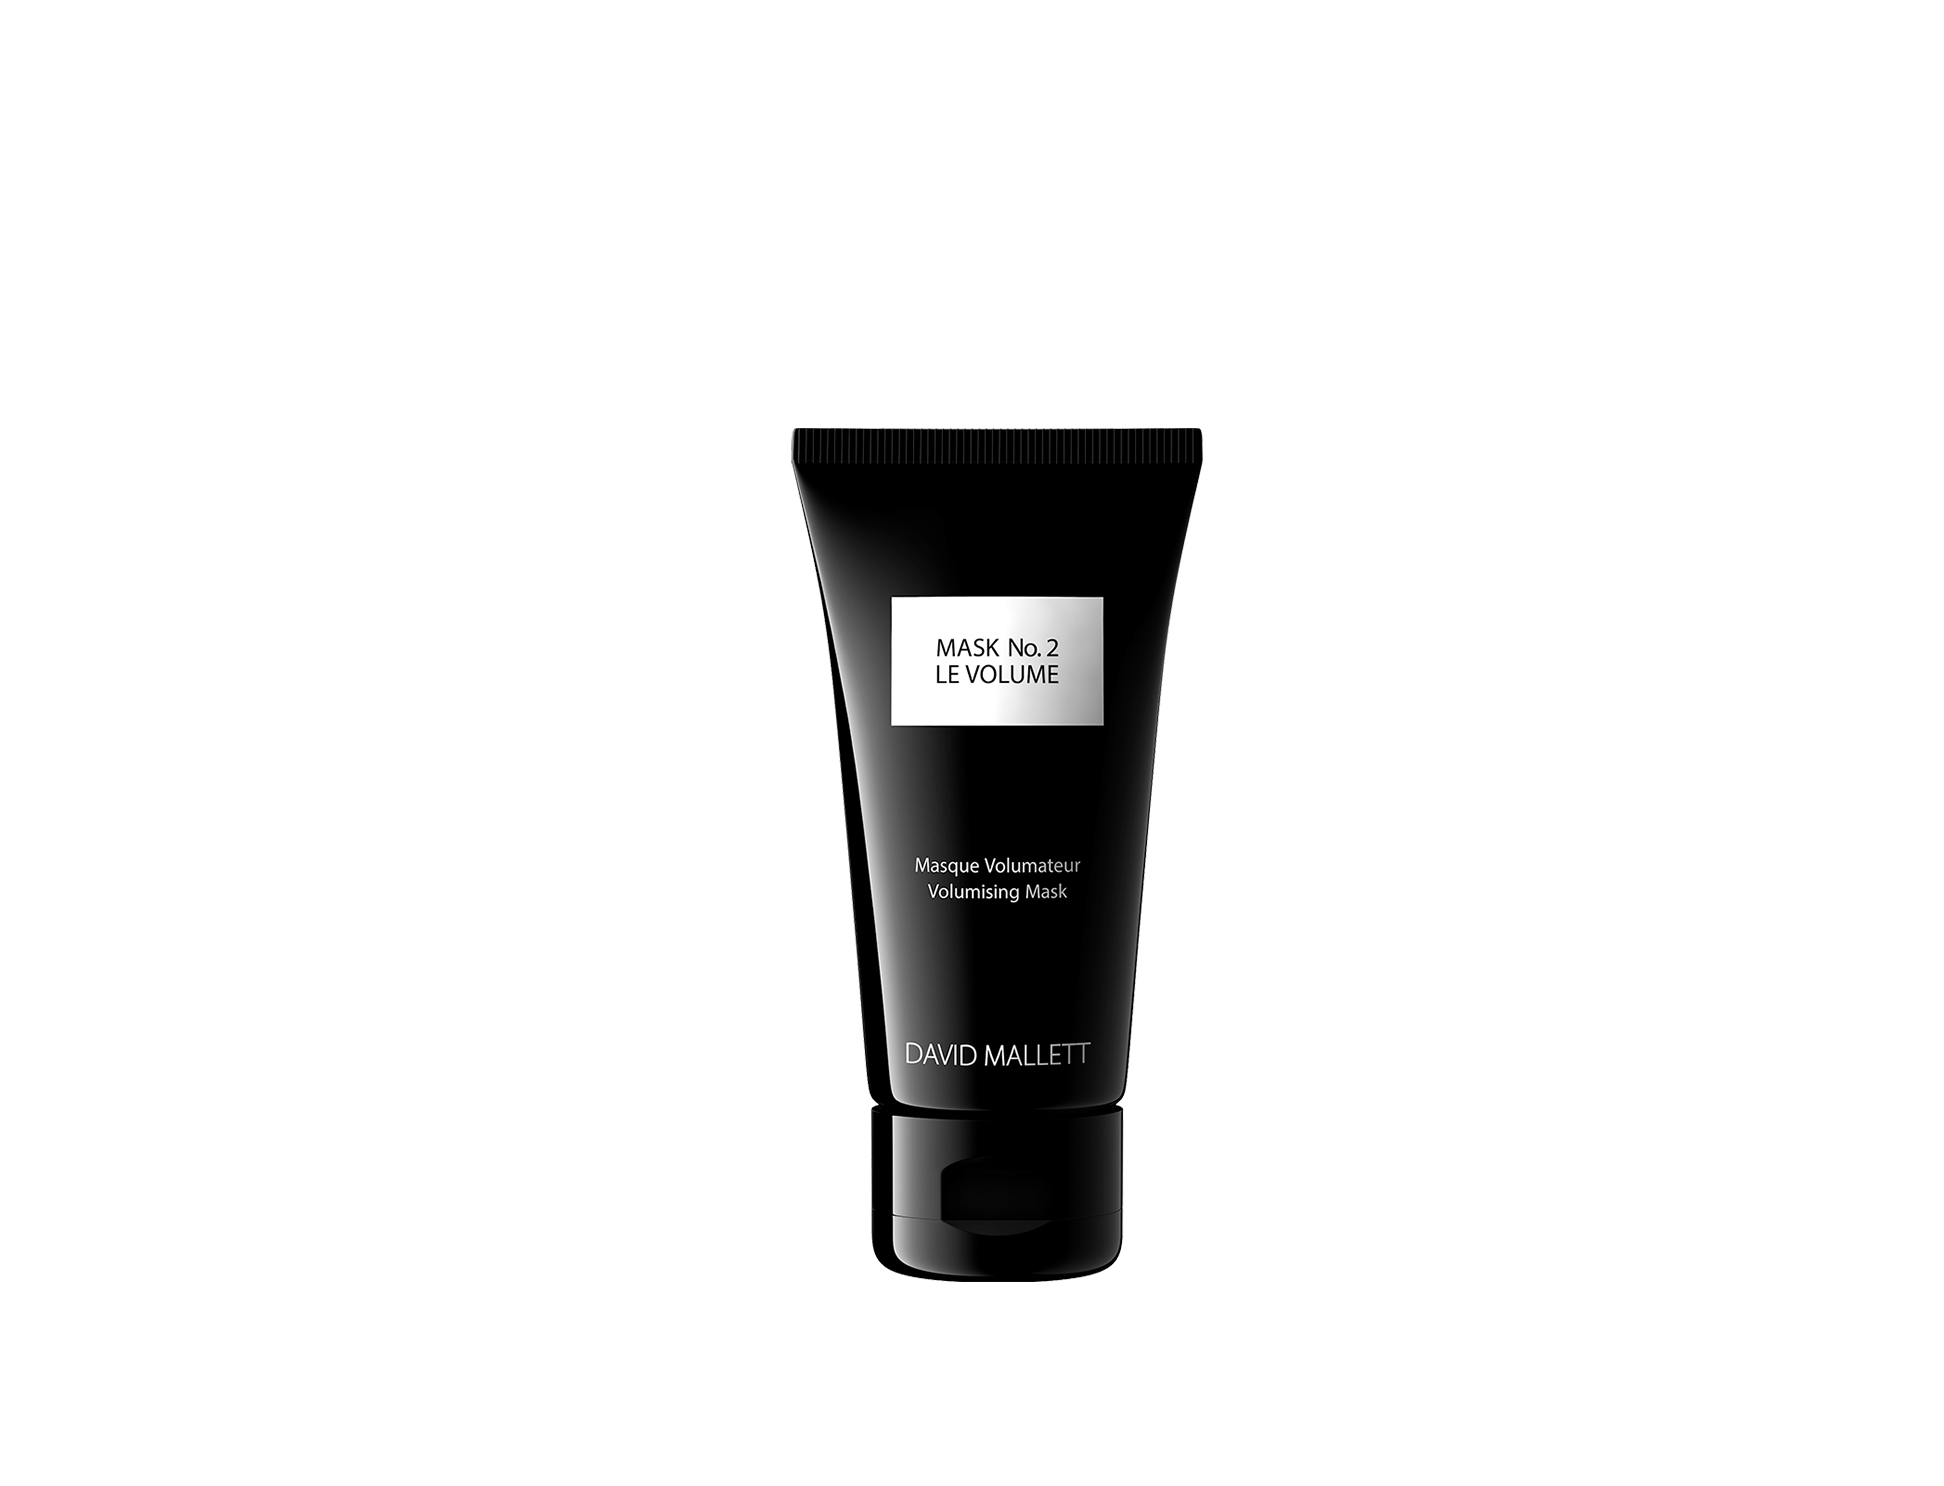 MASK No.2 LE VOLUME (Travel Size)